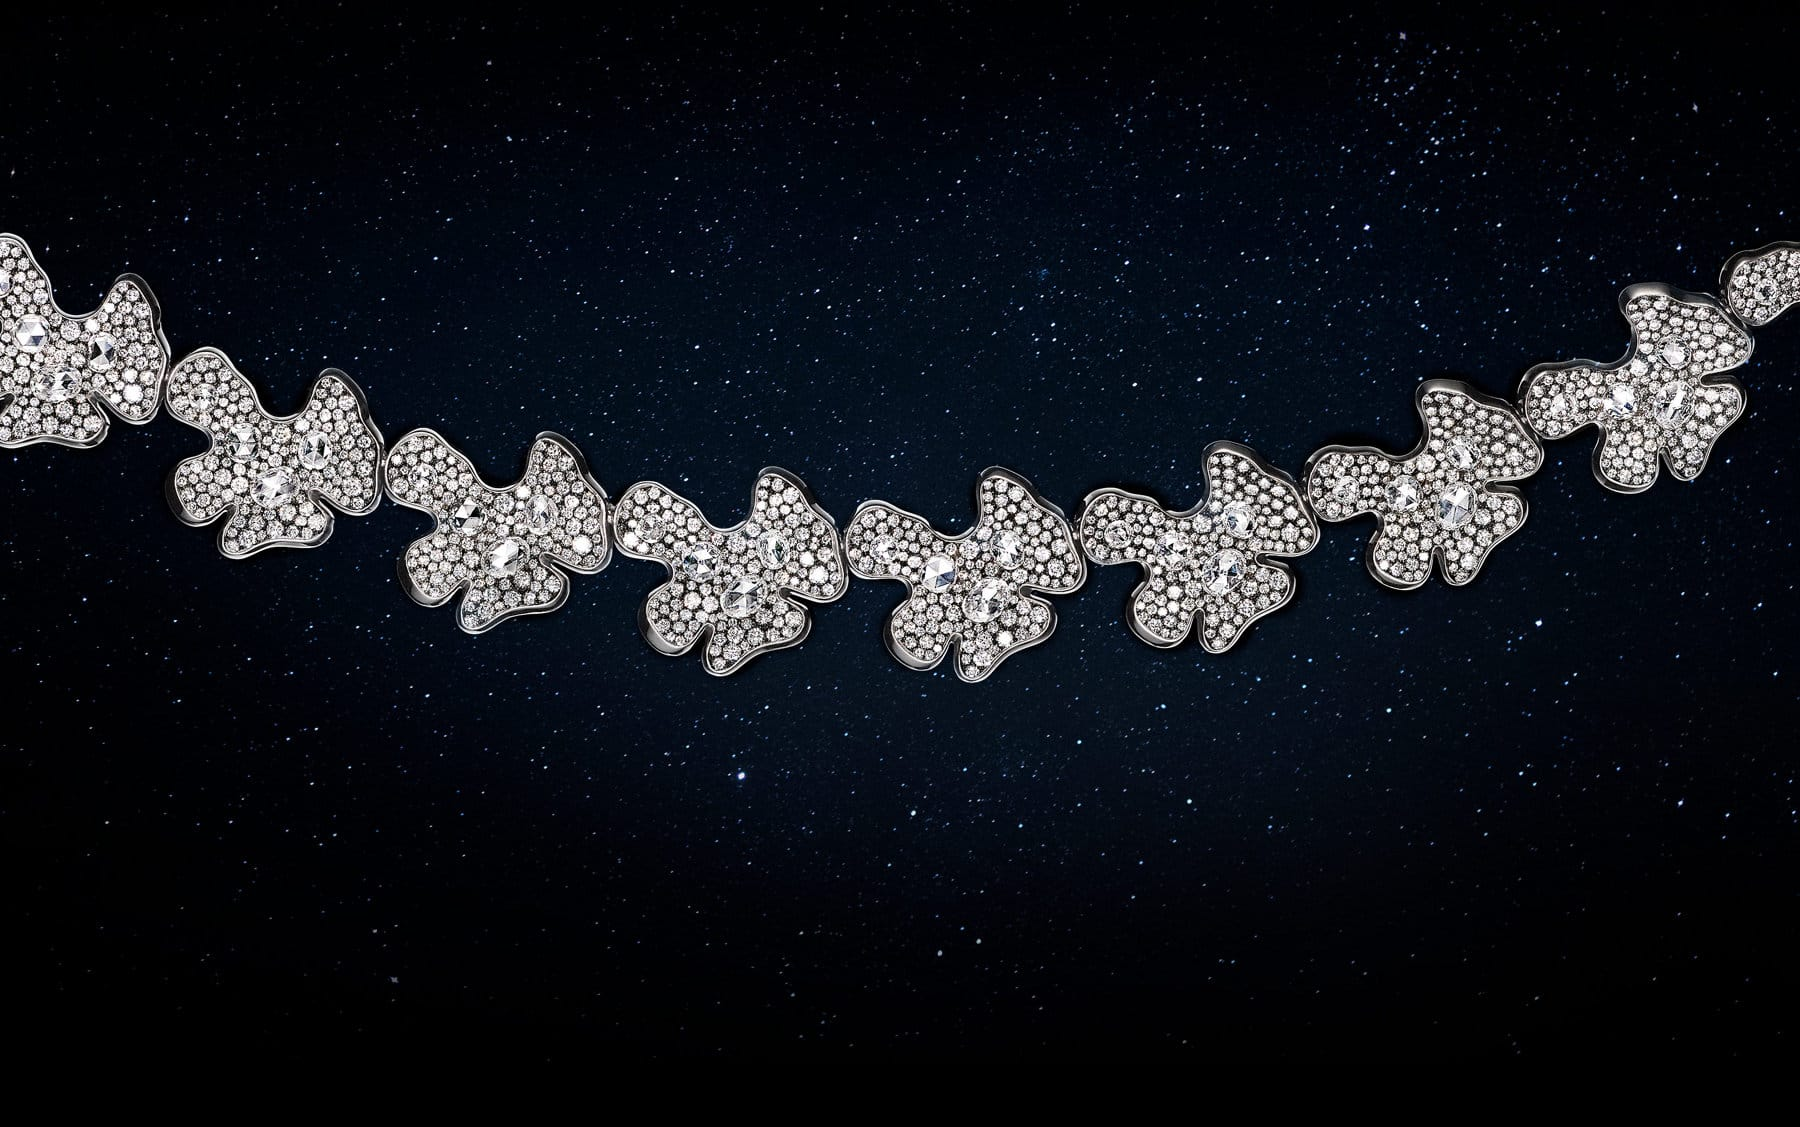 A color photo shows a close-up of David Yurman Night Petals necklace. The necklace is suspended in front of a starry night sky. The necklace is crafted from lily-pad-shaped stations of rhodium-plated 18K white gold encrusted with brilliant- and rose-cut white diamonds.